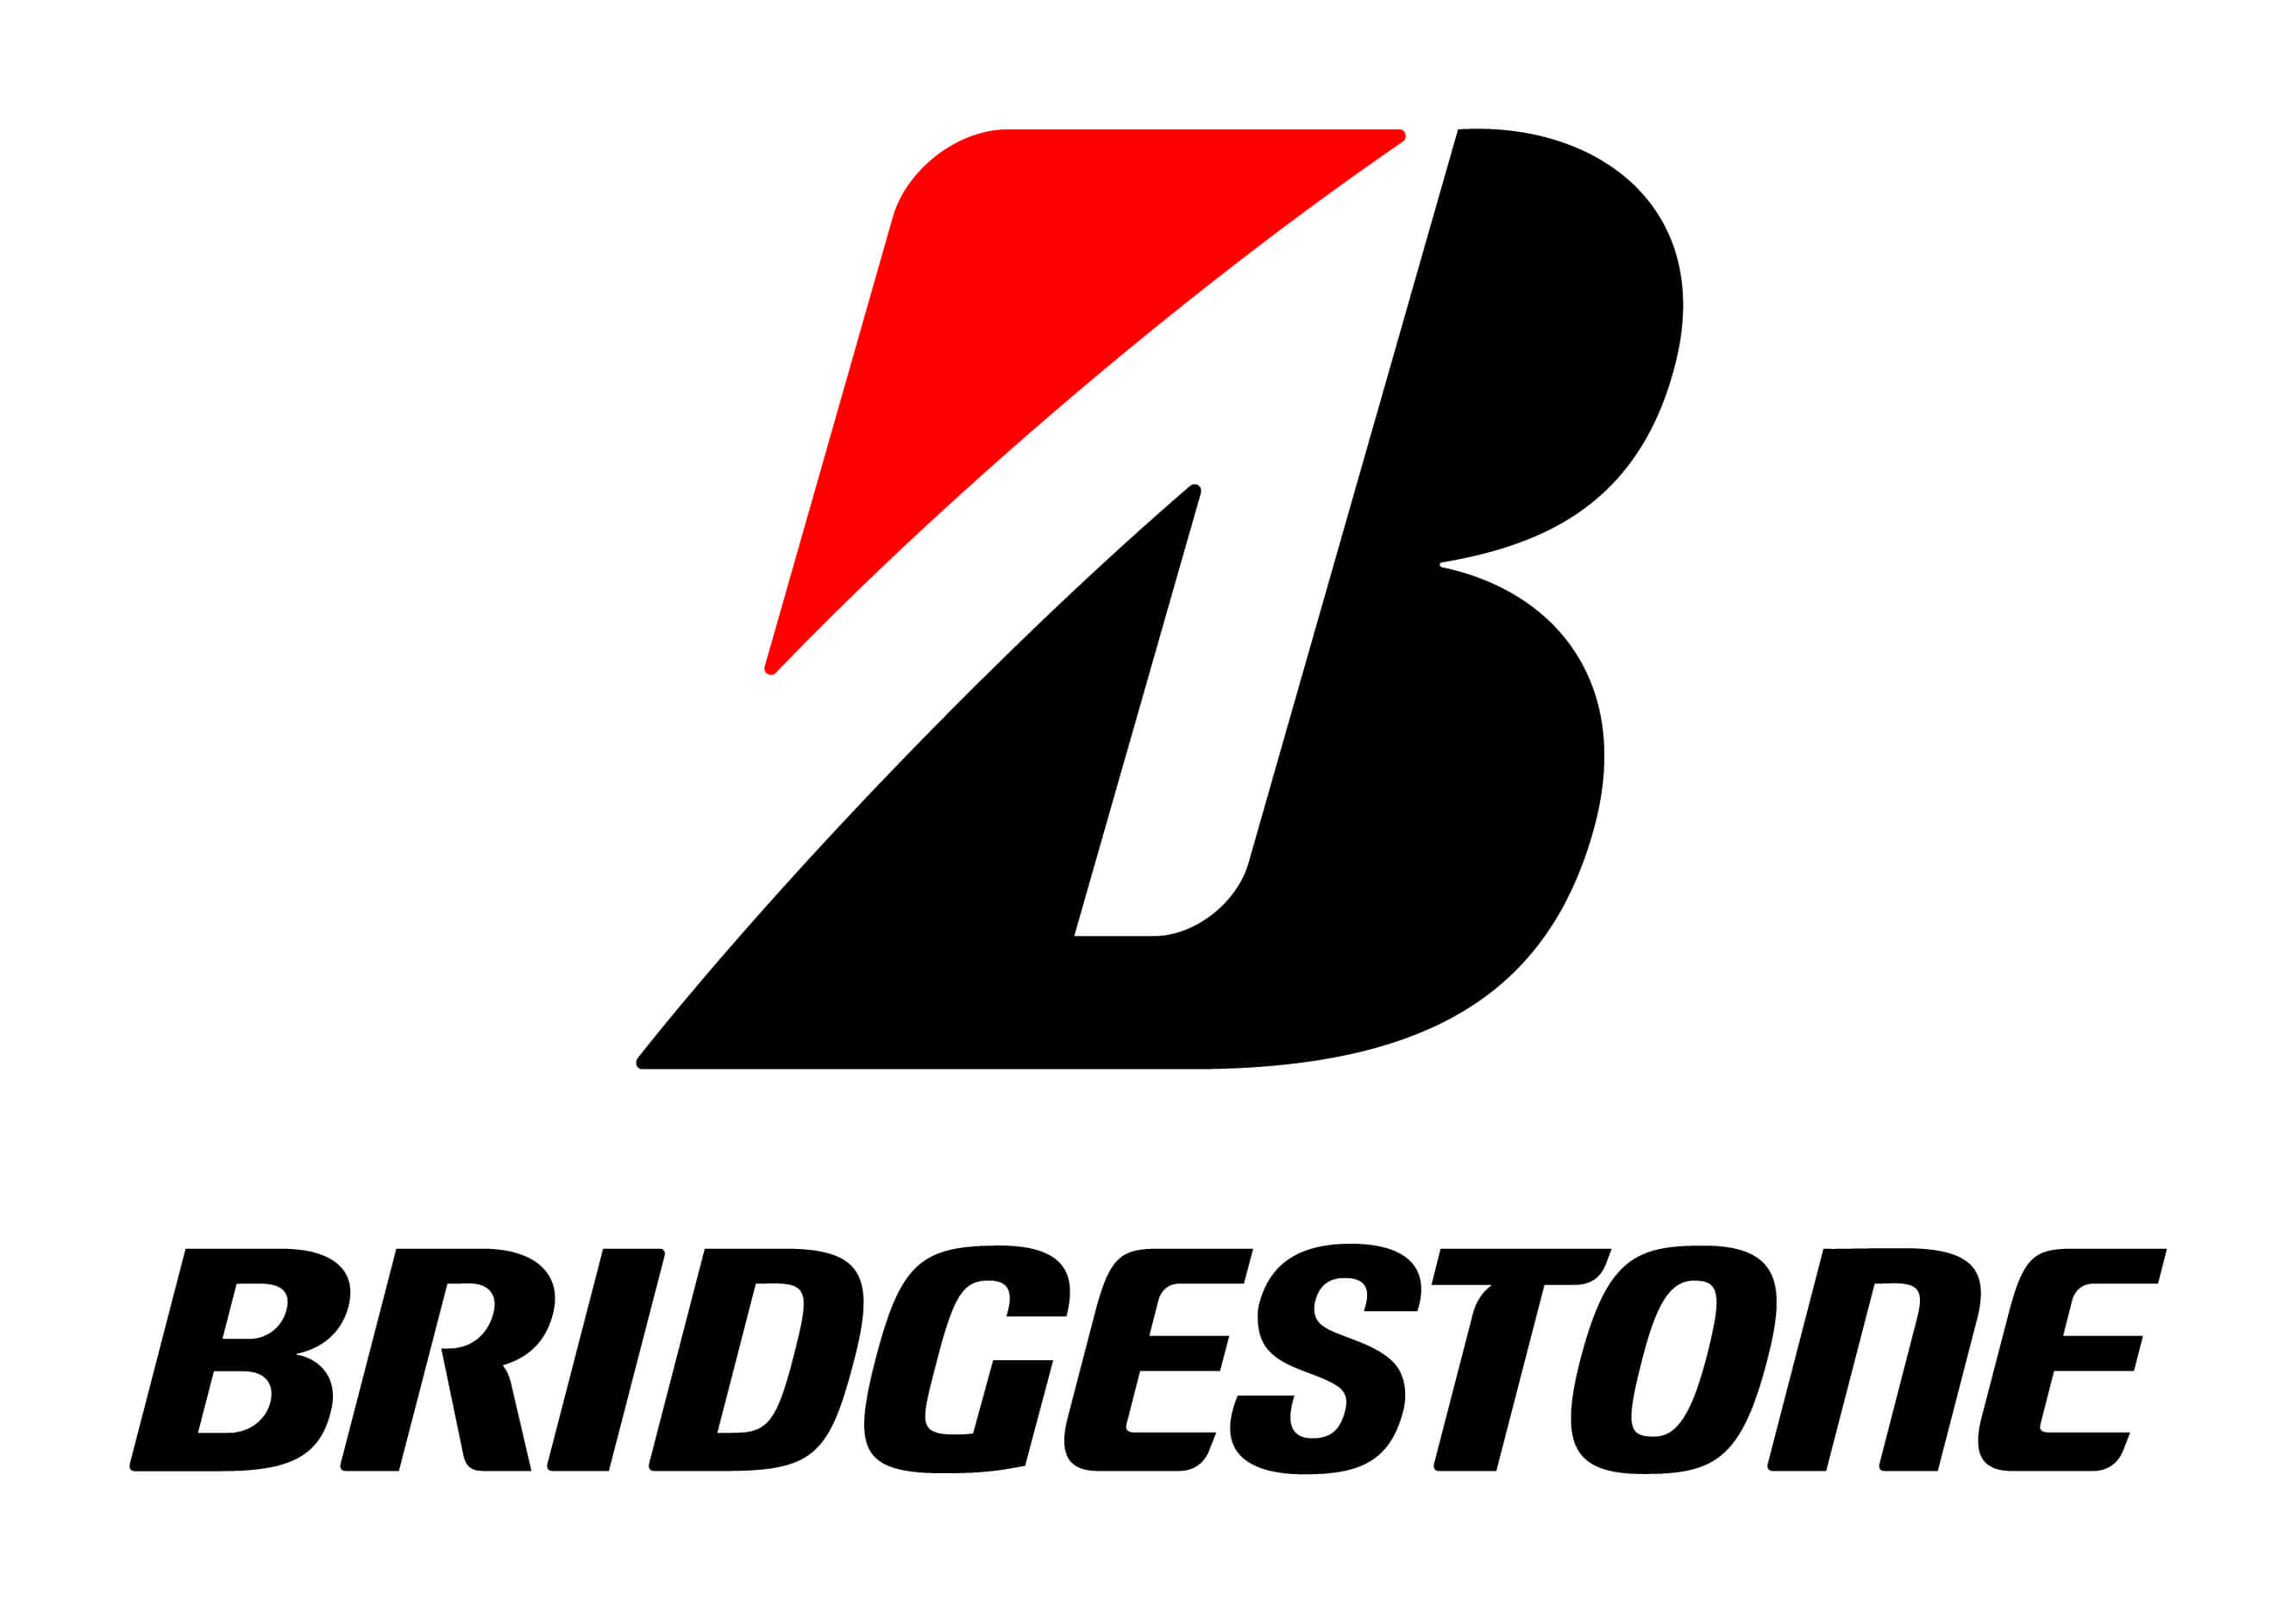 Bridgestone will commence operation of the JV in 2016